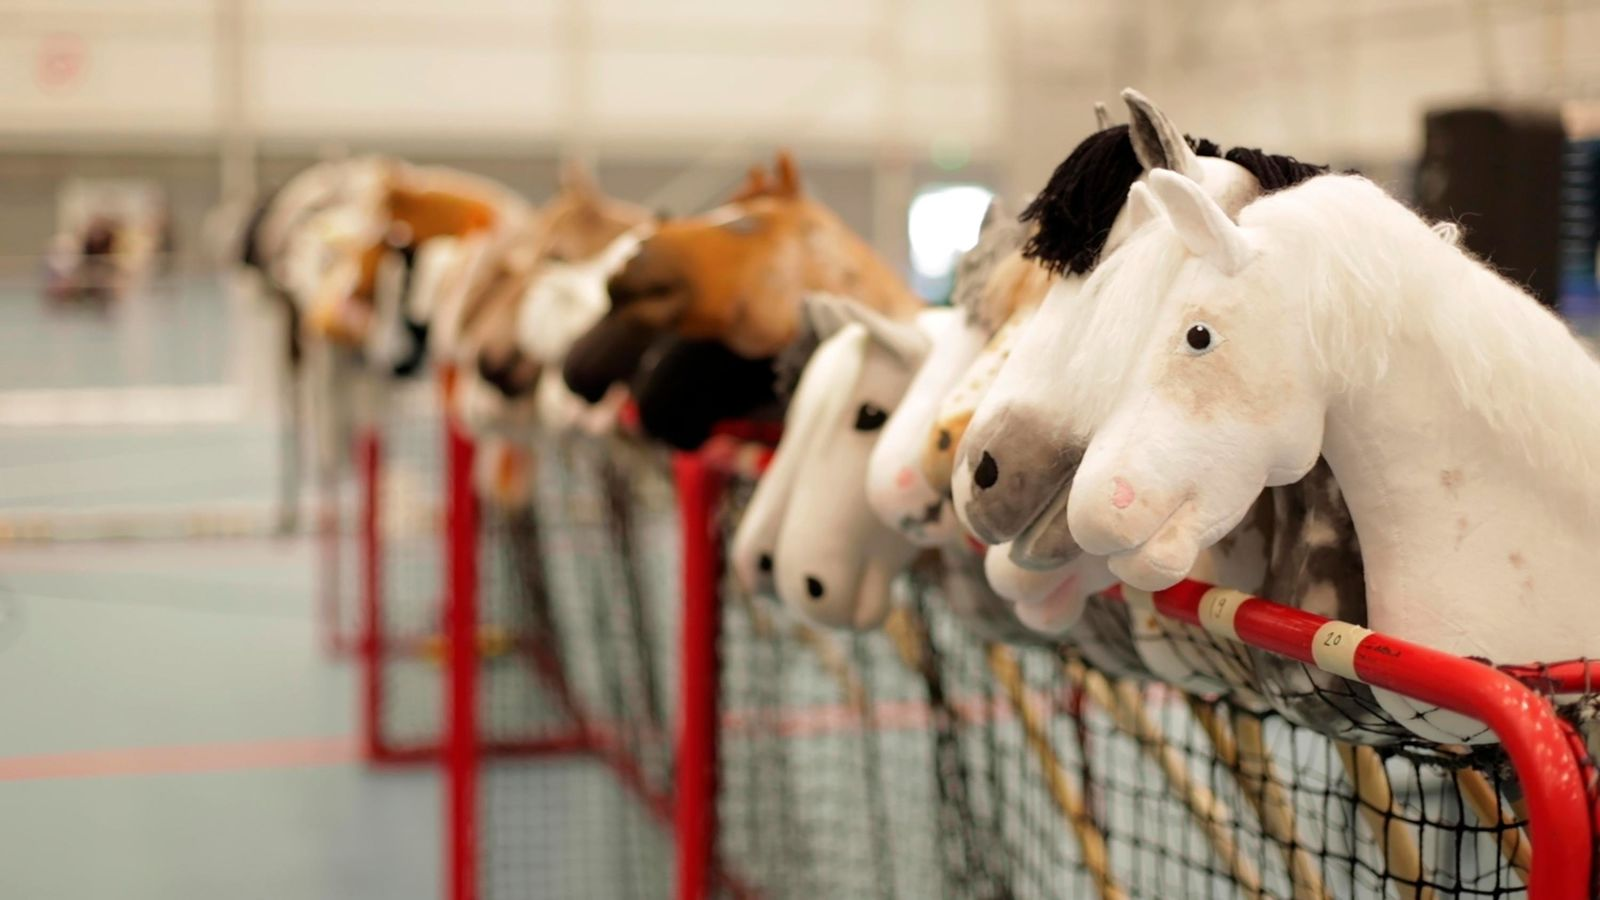 Dozens of hobby horses are lined up ready to be ridden during the 8th Hobby Horse championships in Seinajoki, Finland on Saturday, June 15, 2019. (AP Photo/from APTN Video)